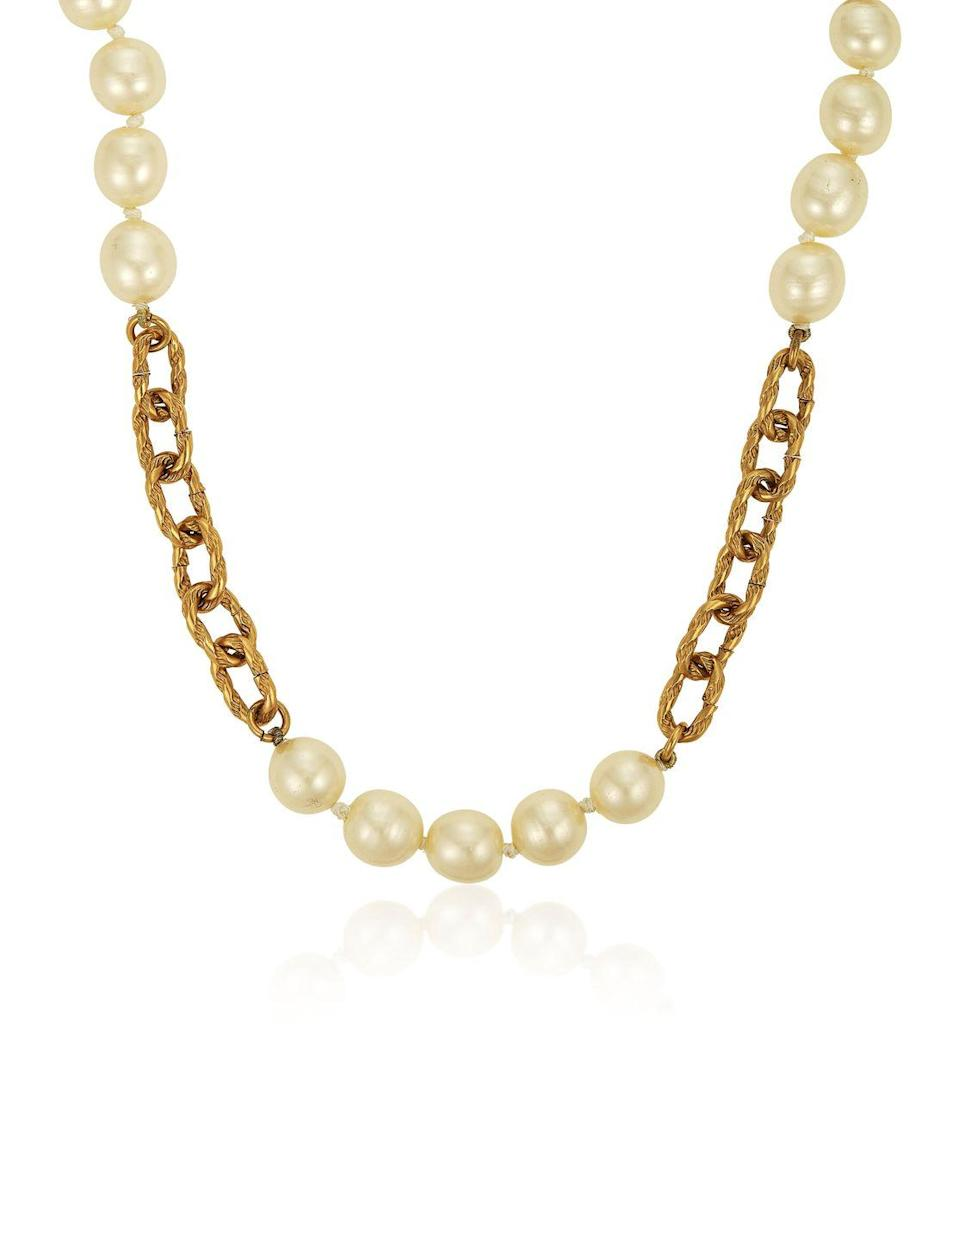 <p>Simple elegance at its finest, this necklace is estimated to be worth $2,000 to $3,000.</p>